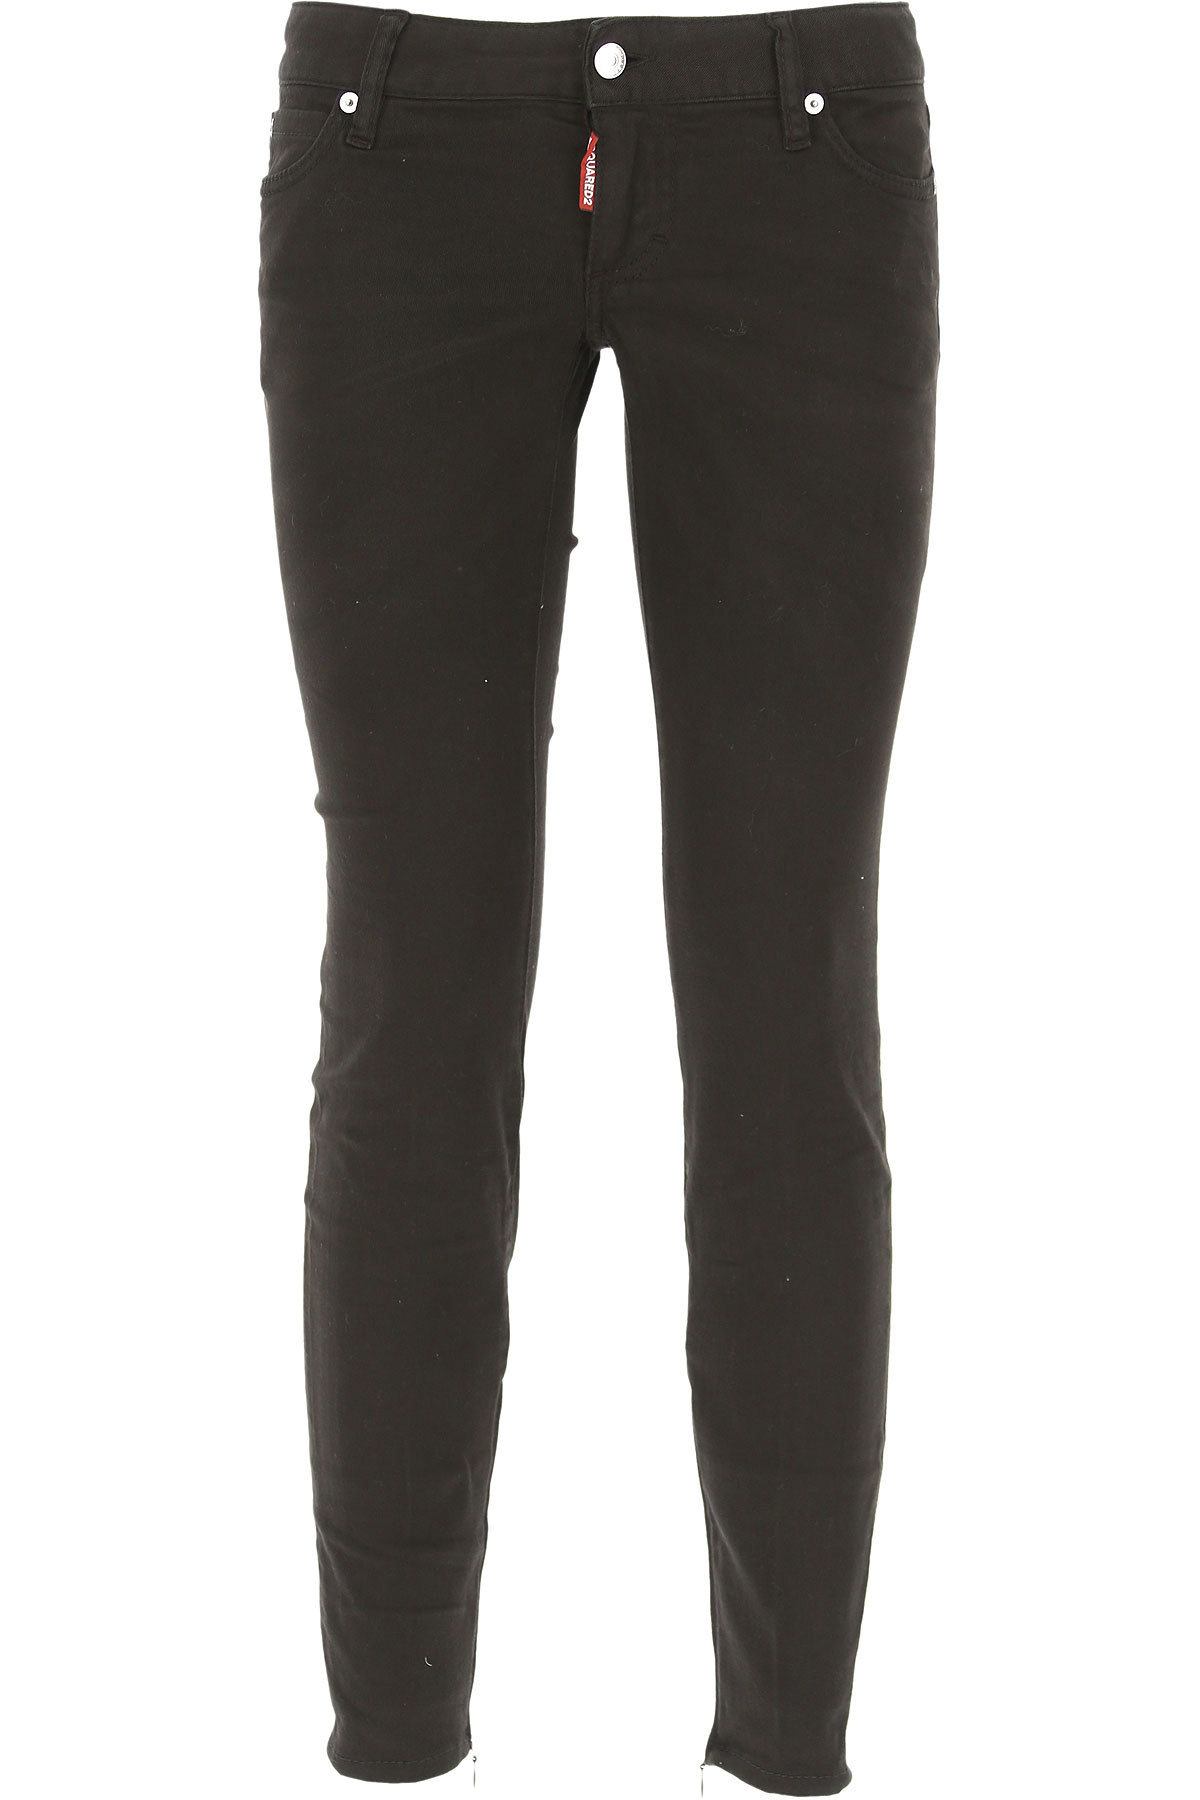 Dsquared2 Jeans On Sale in Outlet, Black, Cotton, 2017, 24 4